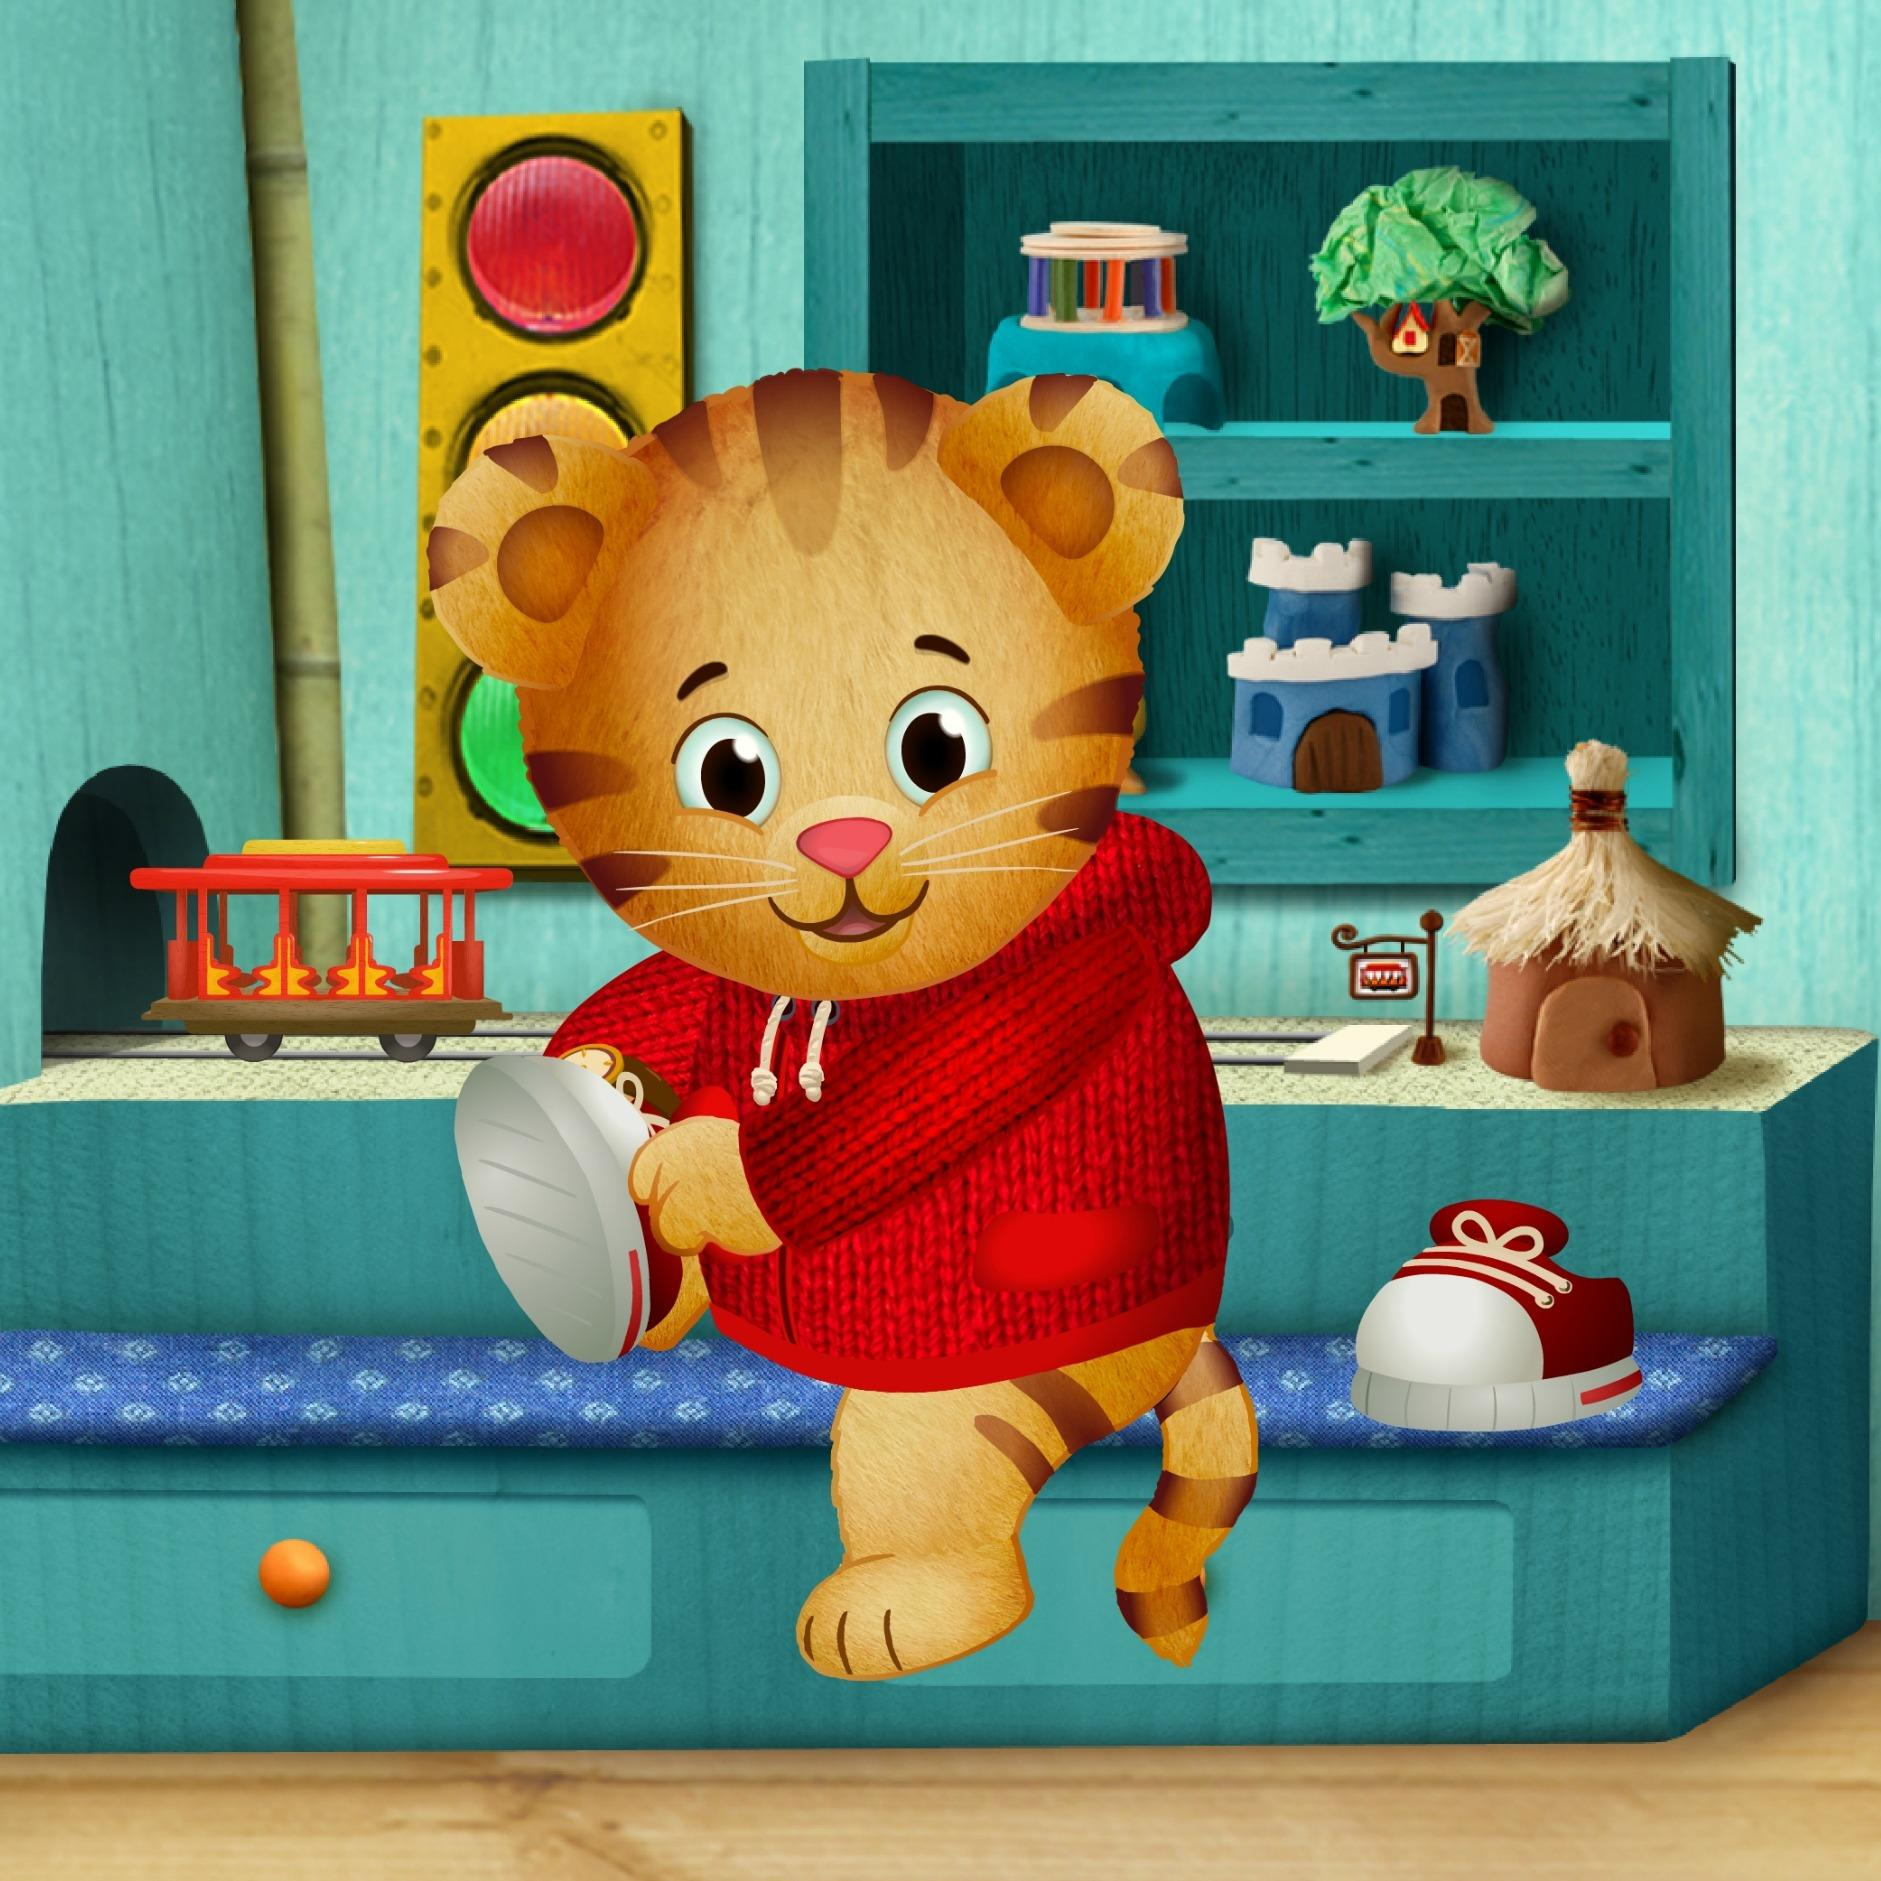 This is a picture of Gratifying Daniel Tiger Pictures